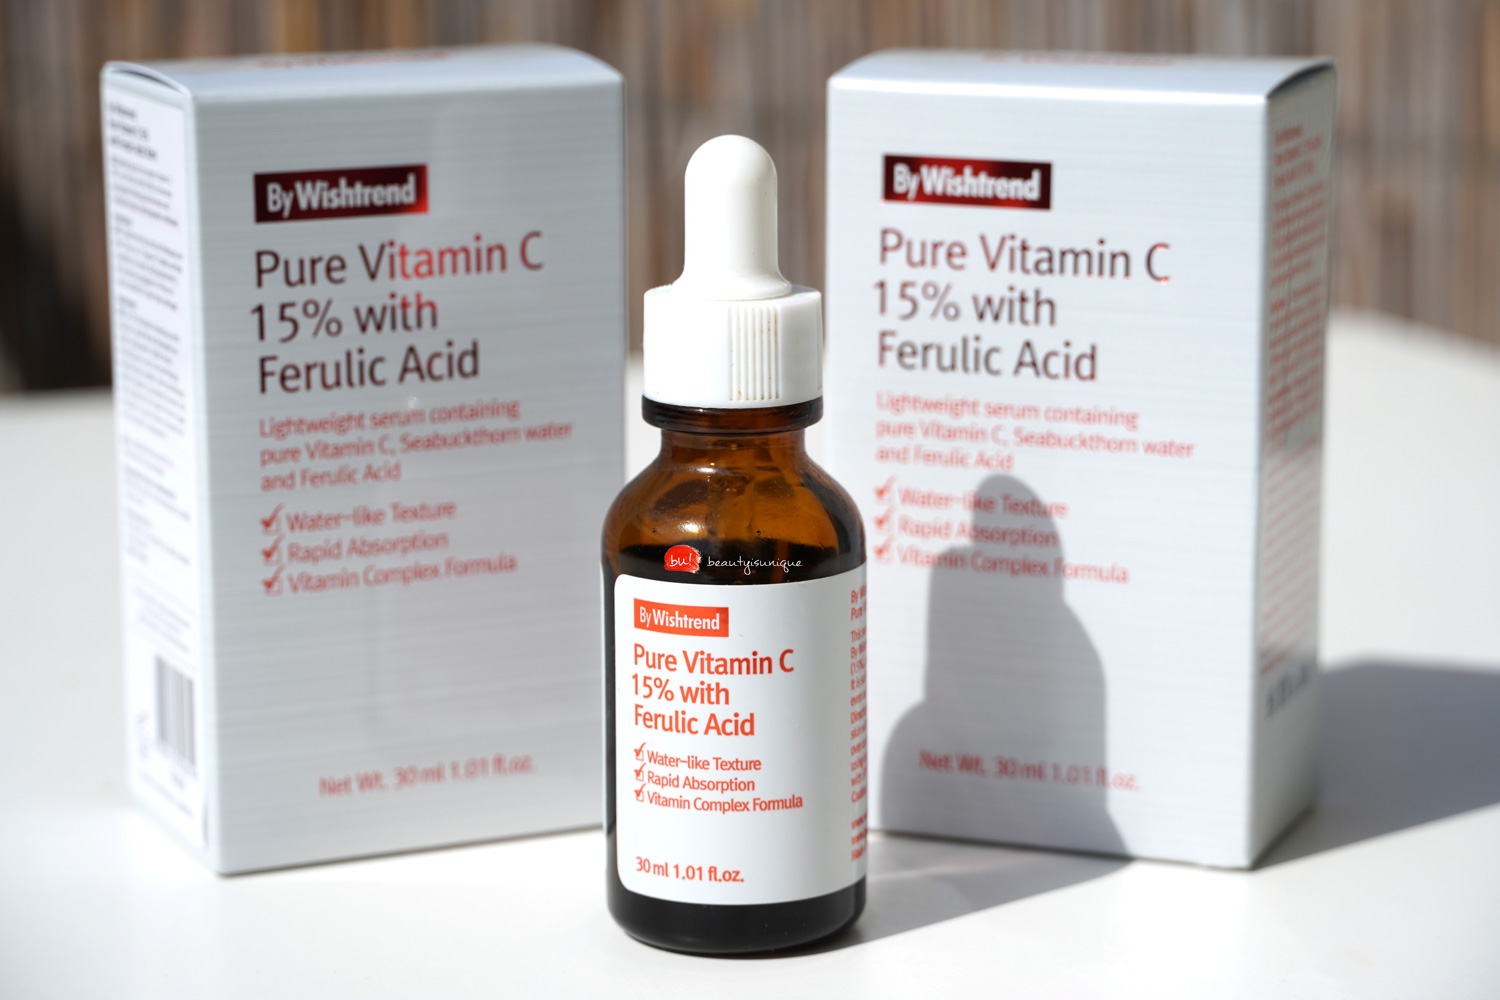 by-wishtrend-pure-vitamin-c-15%-with-ferulic-acid